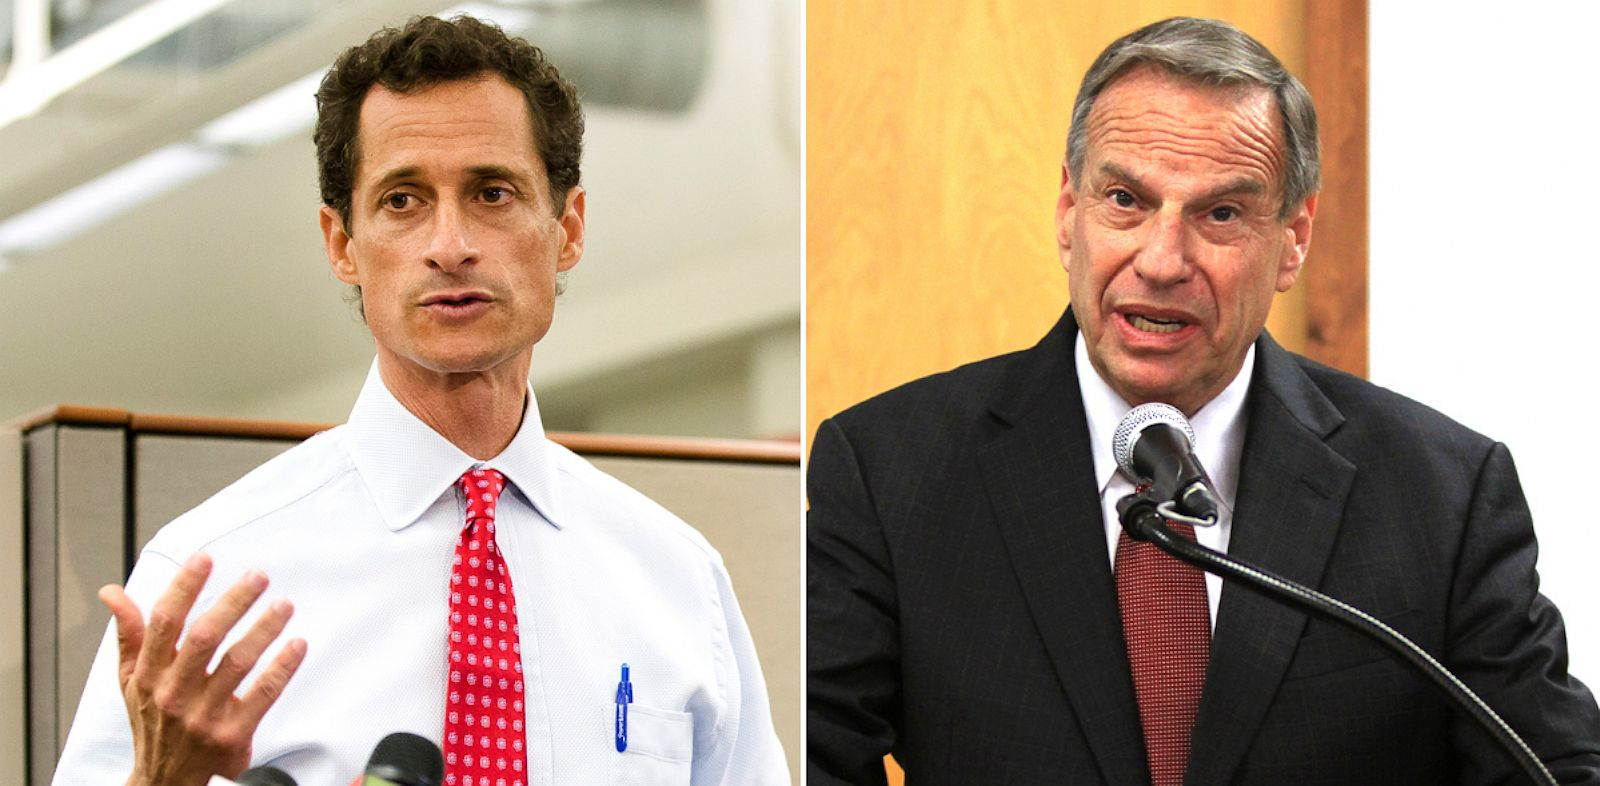 PHOTO: Anthony Weiner and Bob Filner